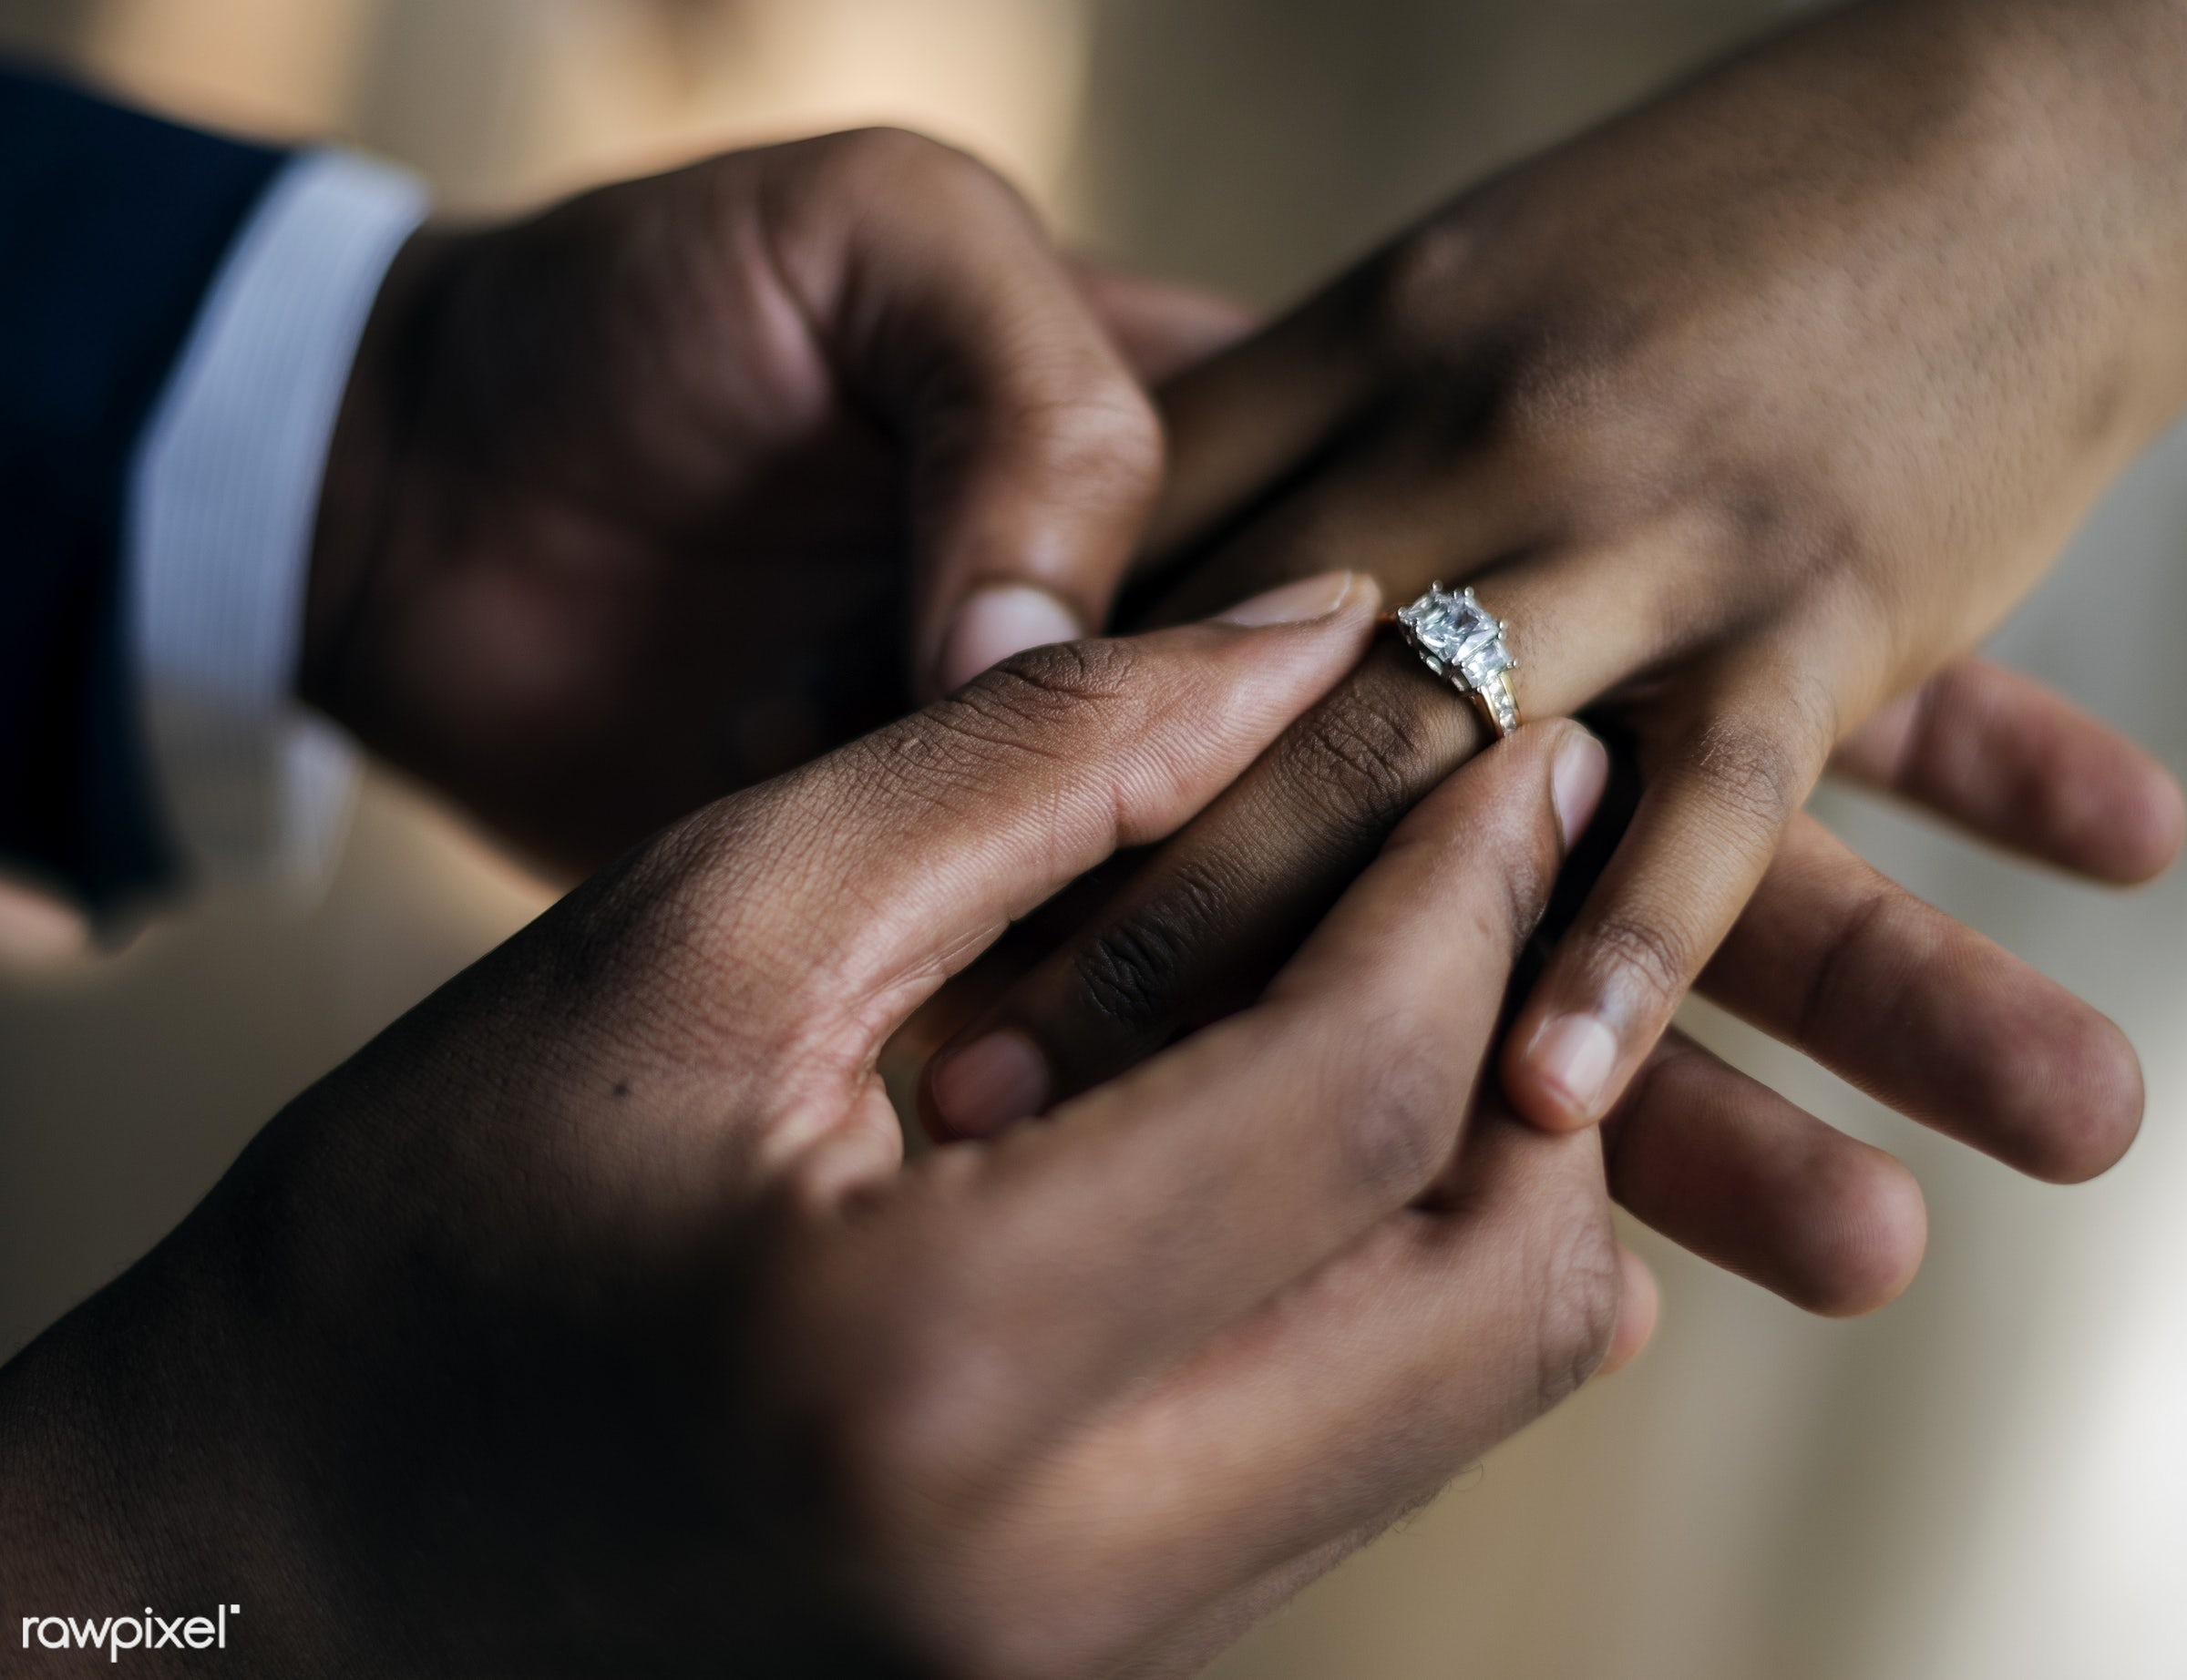 holding, people, together, love, married, hands, couple, bride, black, closeup, ring, put on, african descent, newlywed,...